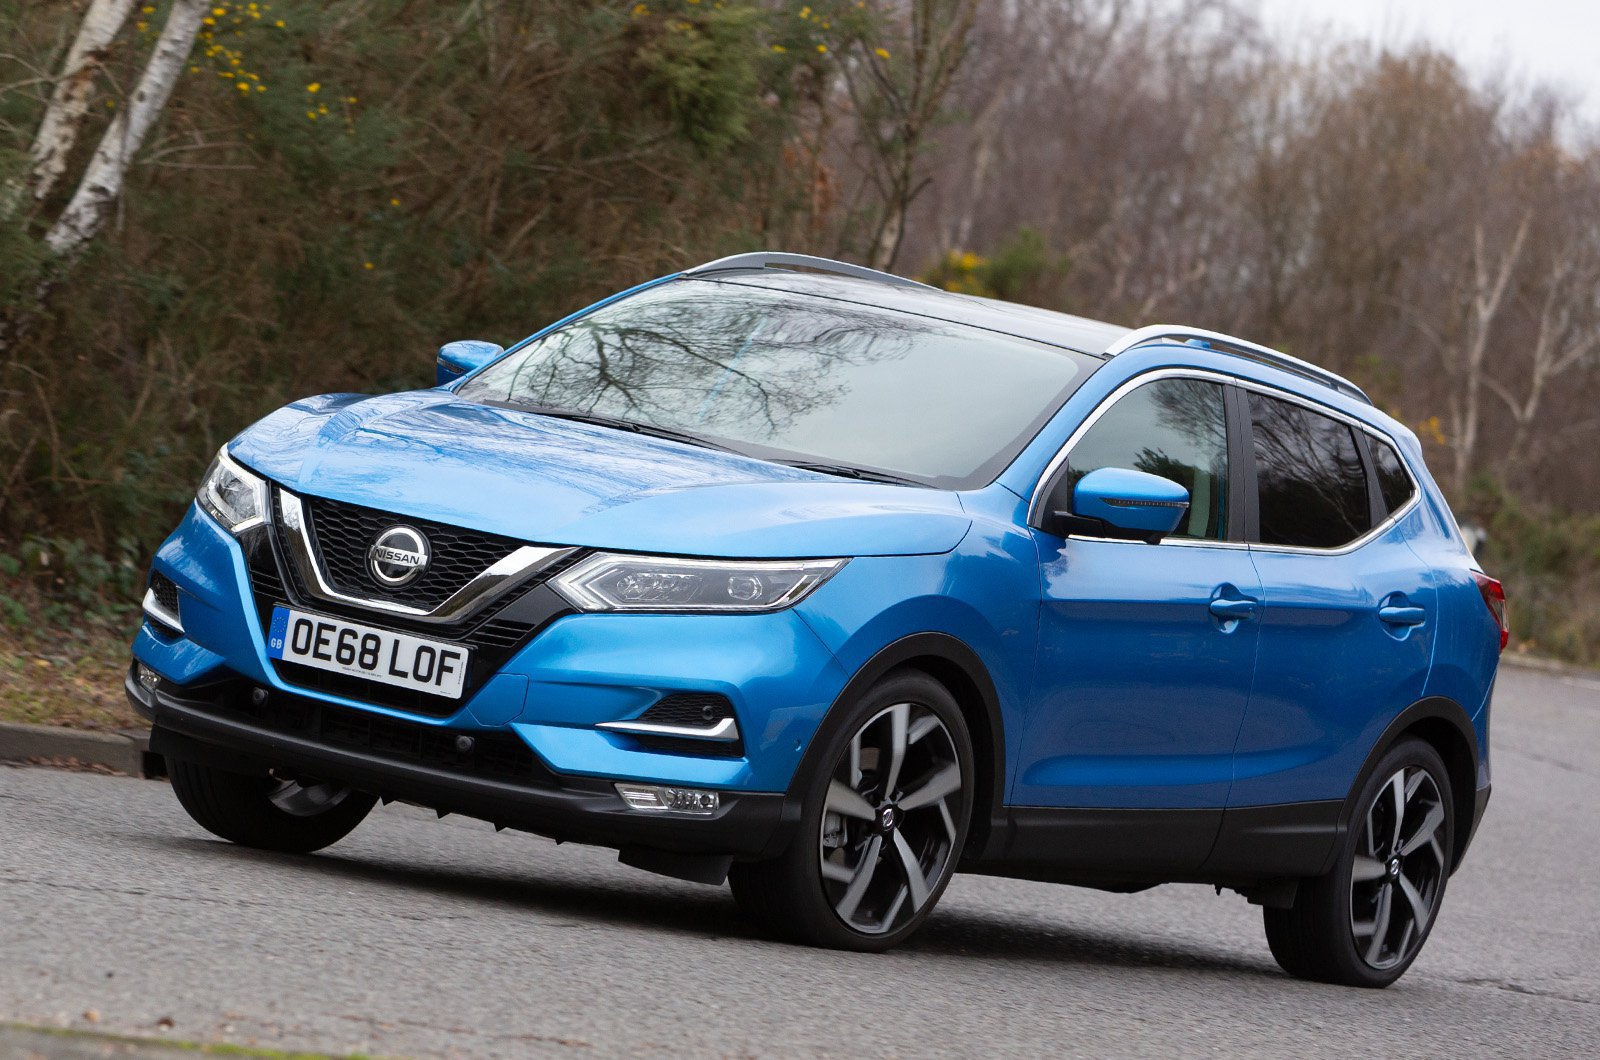 Nissan Qashqai 1.3 DIG-T N-Connecta [Executive Pack]